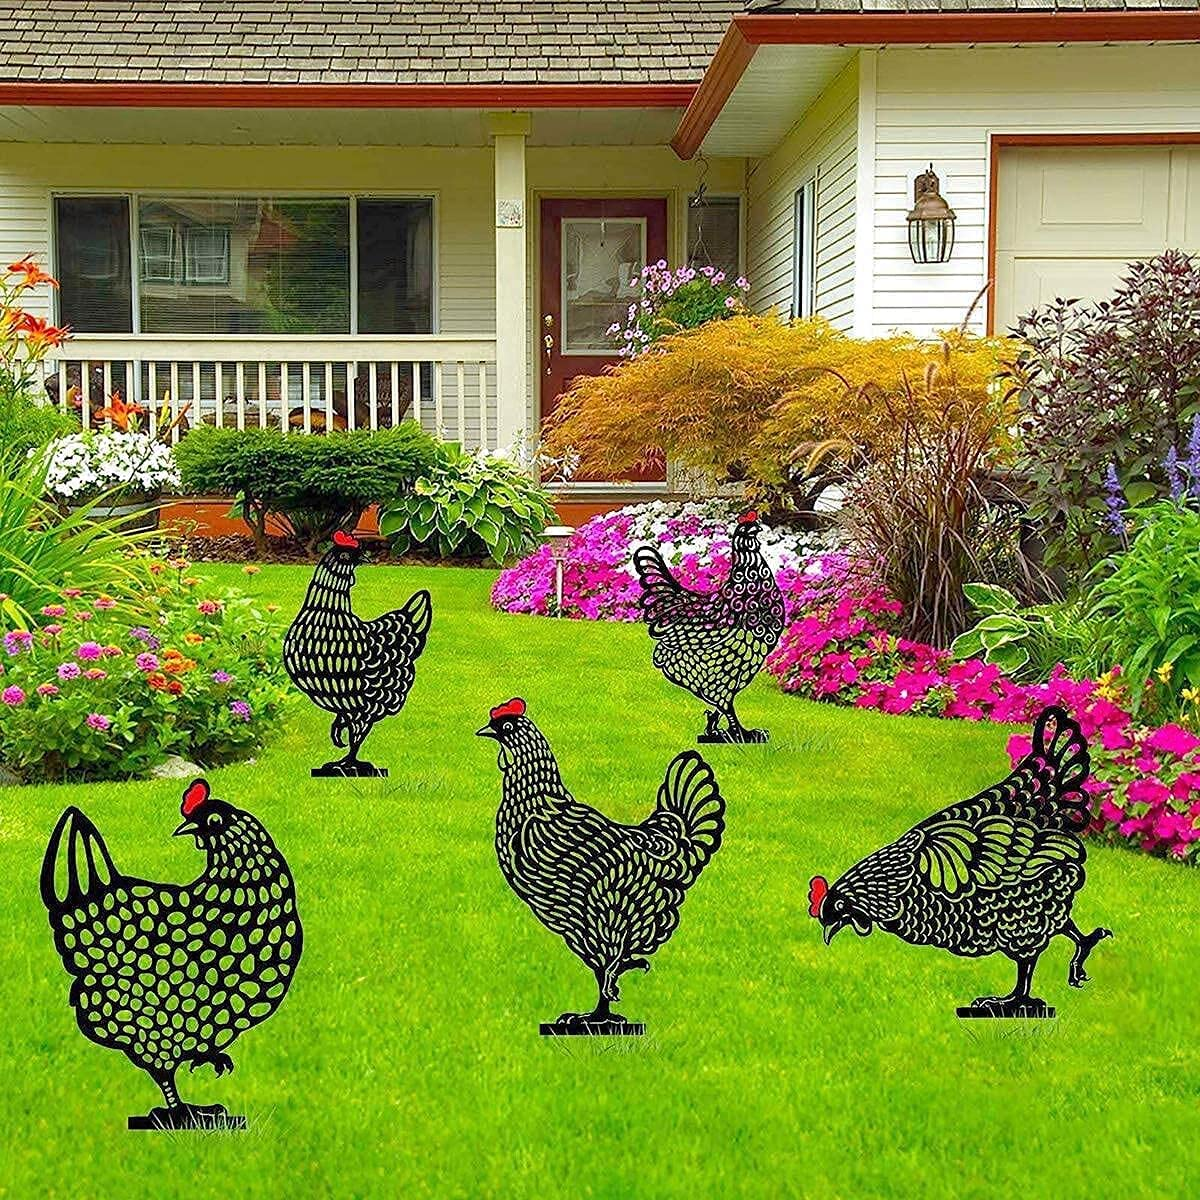 MIKITA 5-Piece Rooster Metal Animal Stakes ,Chicken Garden Silhouette Yard Art,16 inch Black Hollow Out Animal Shape Decor for Outdoor Lawn.